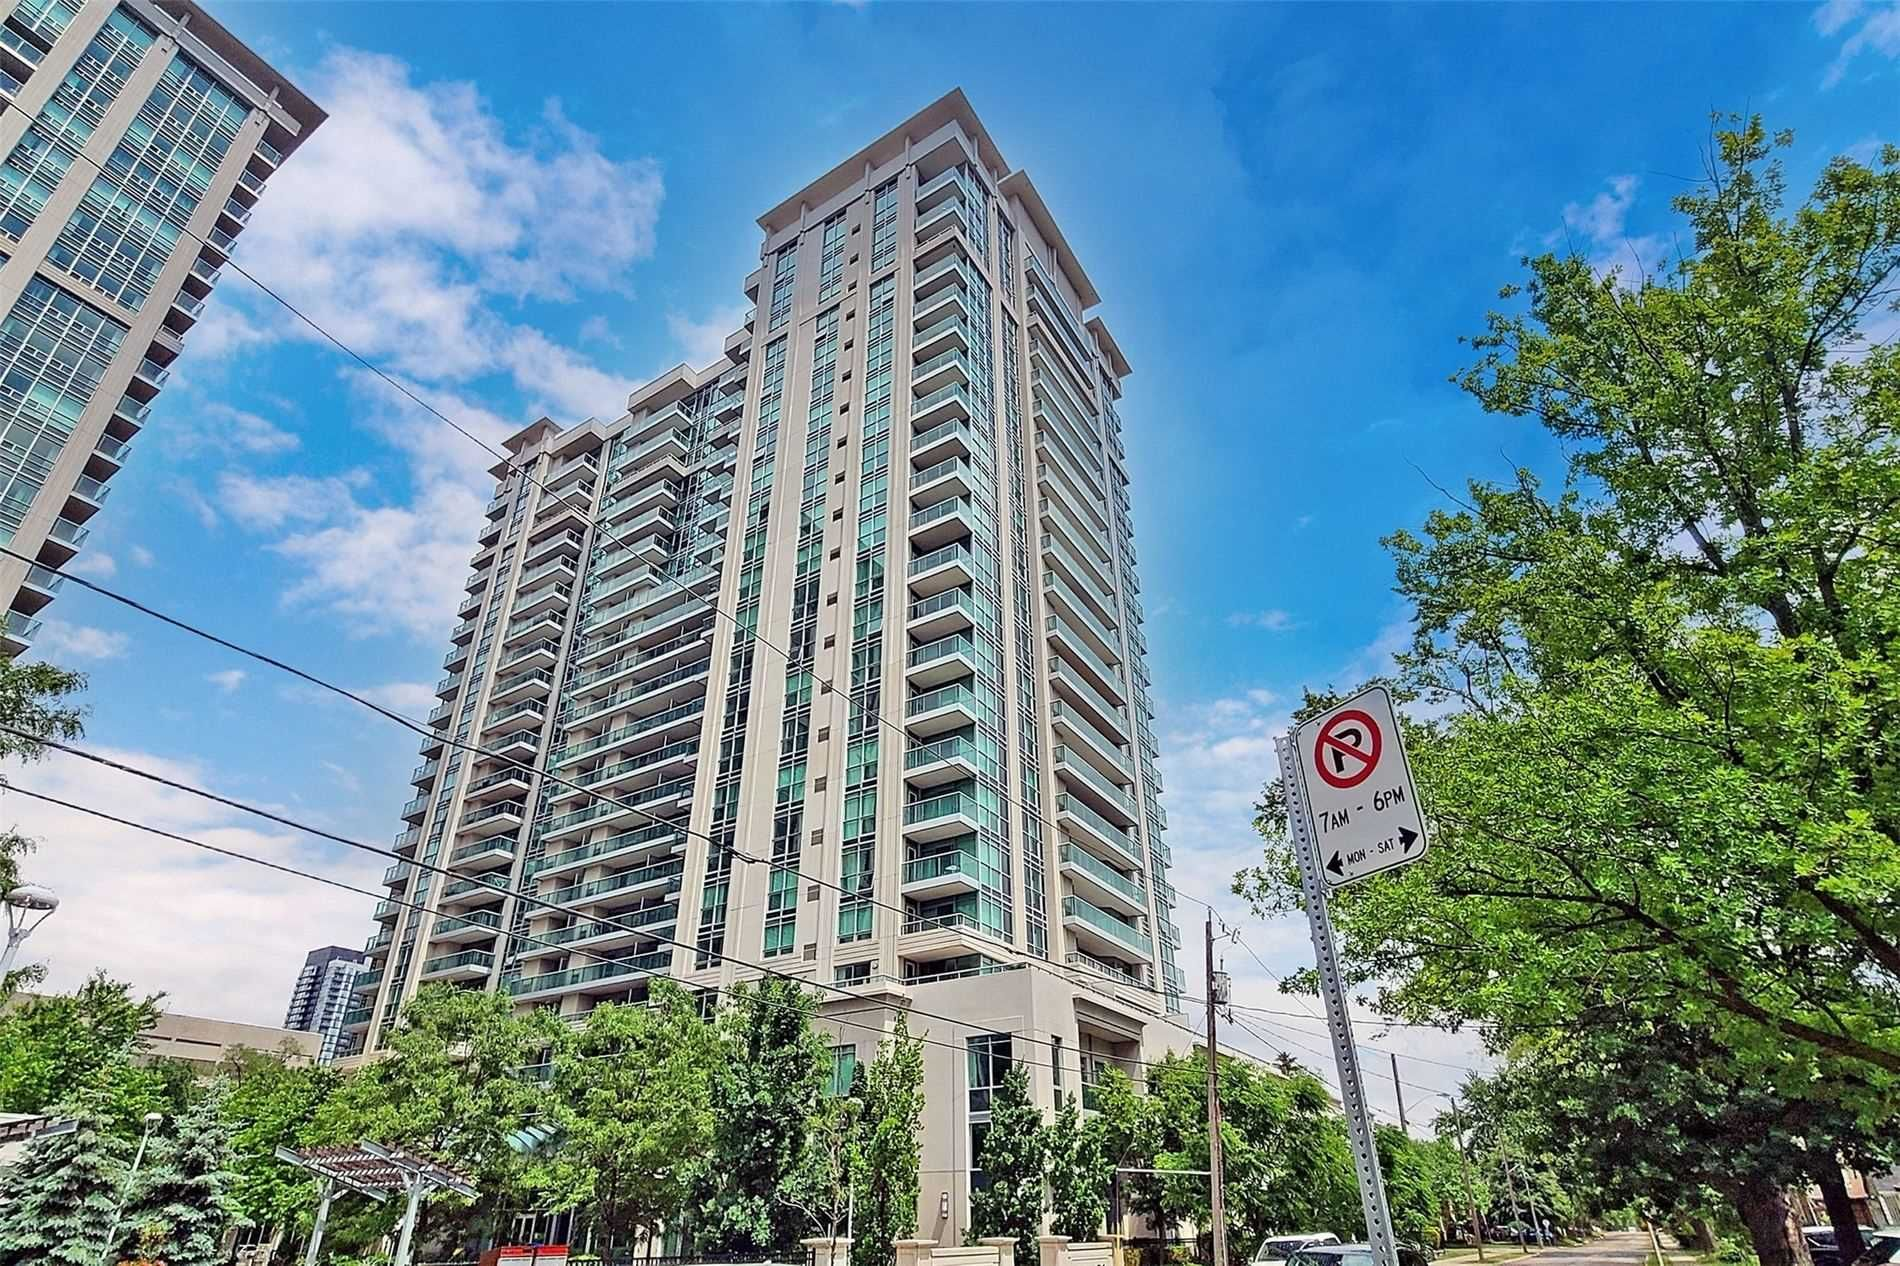 17 Anndale Dr, unit 1903 for sale in Toronto - image #2